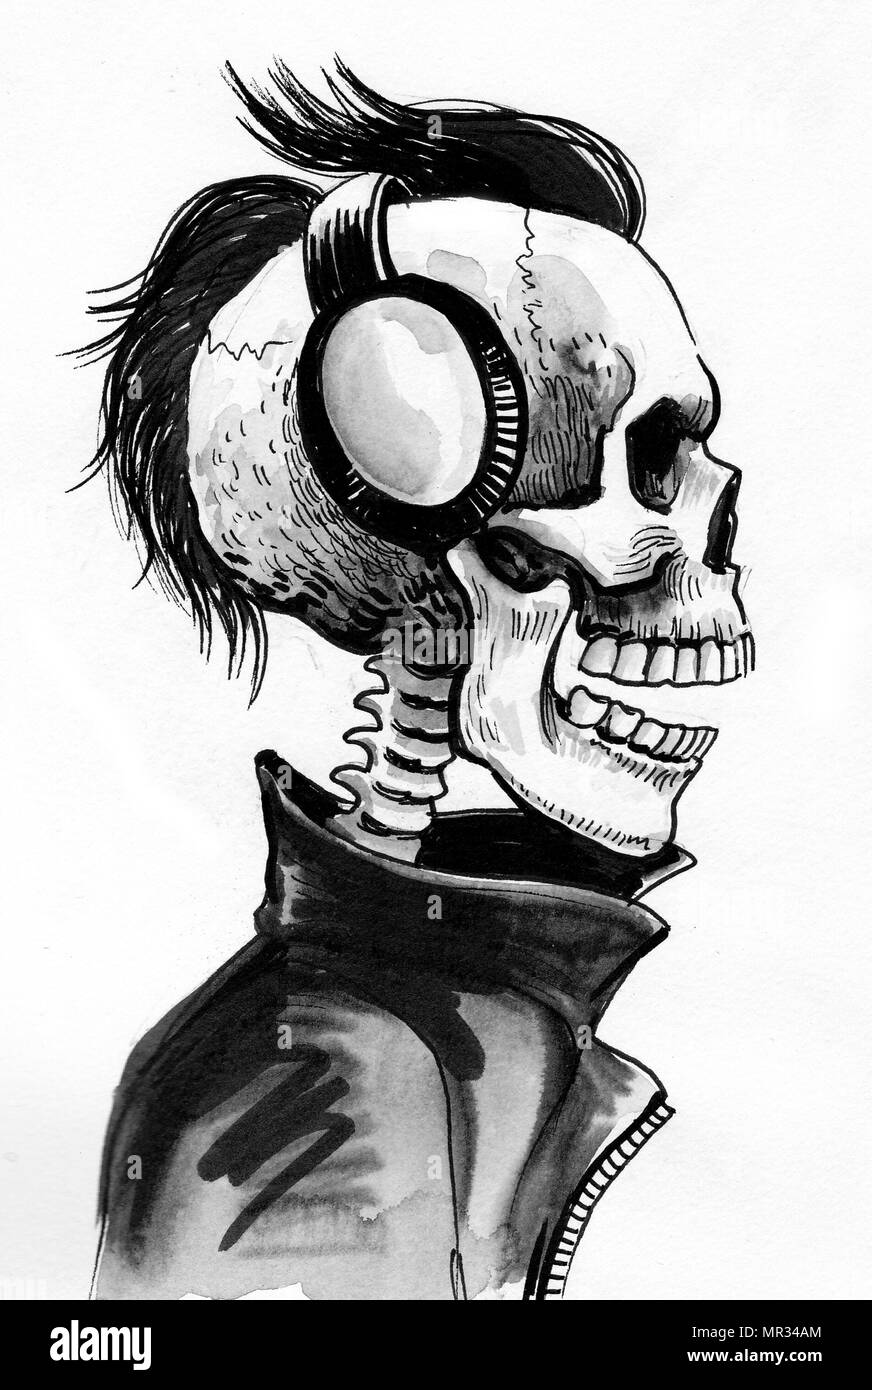 Cool skeleton in leather jacket and headphones ink black and white drawing